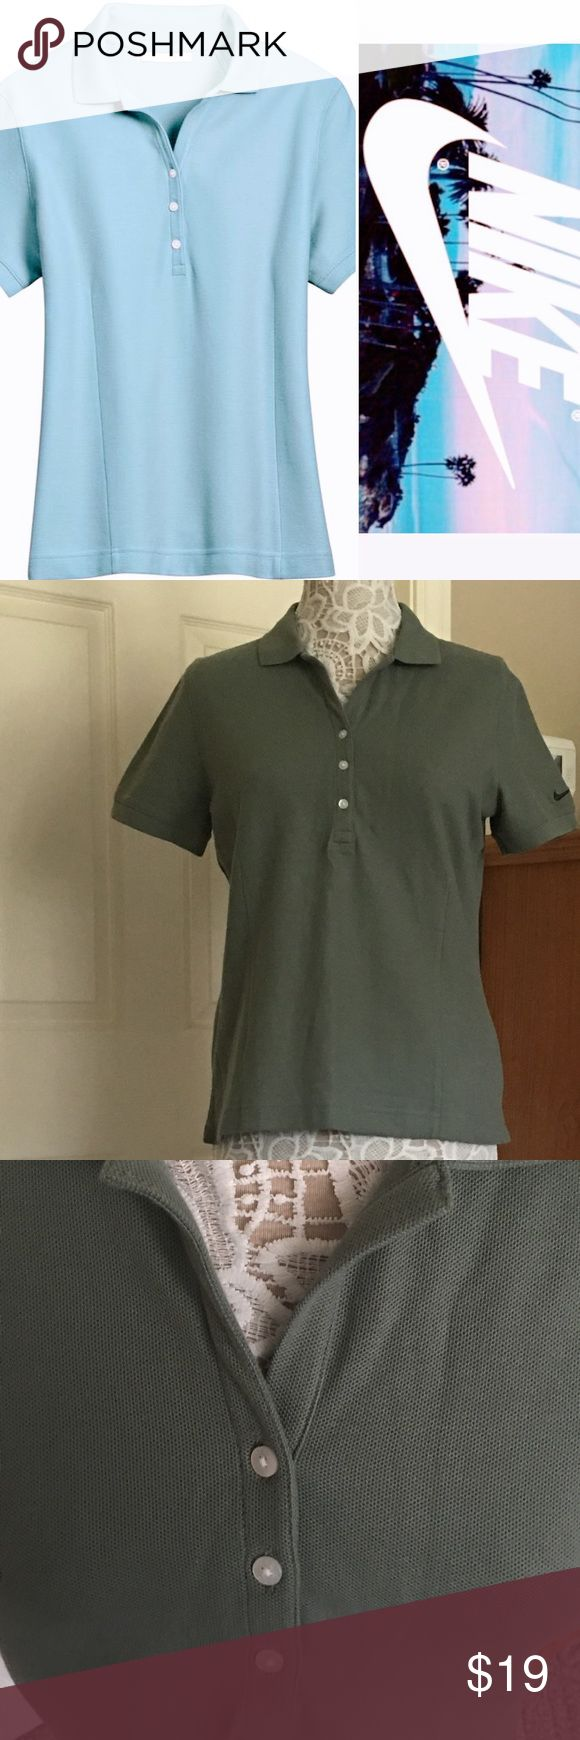 "NIKE GOLF POLO PIQUE KNIT SHIRT #297995 🏌 NWT NIKE GOLF Ladies polo shirt. Color is #348 which is sort of an olive green. See pic 2 for actual color. Approximately 24""L with a 7.5"" sleeve. Comes from a smoke free home 🏡 Bundle & save! Nike Tops"